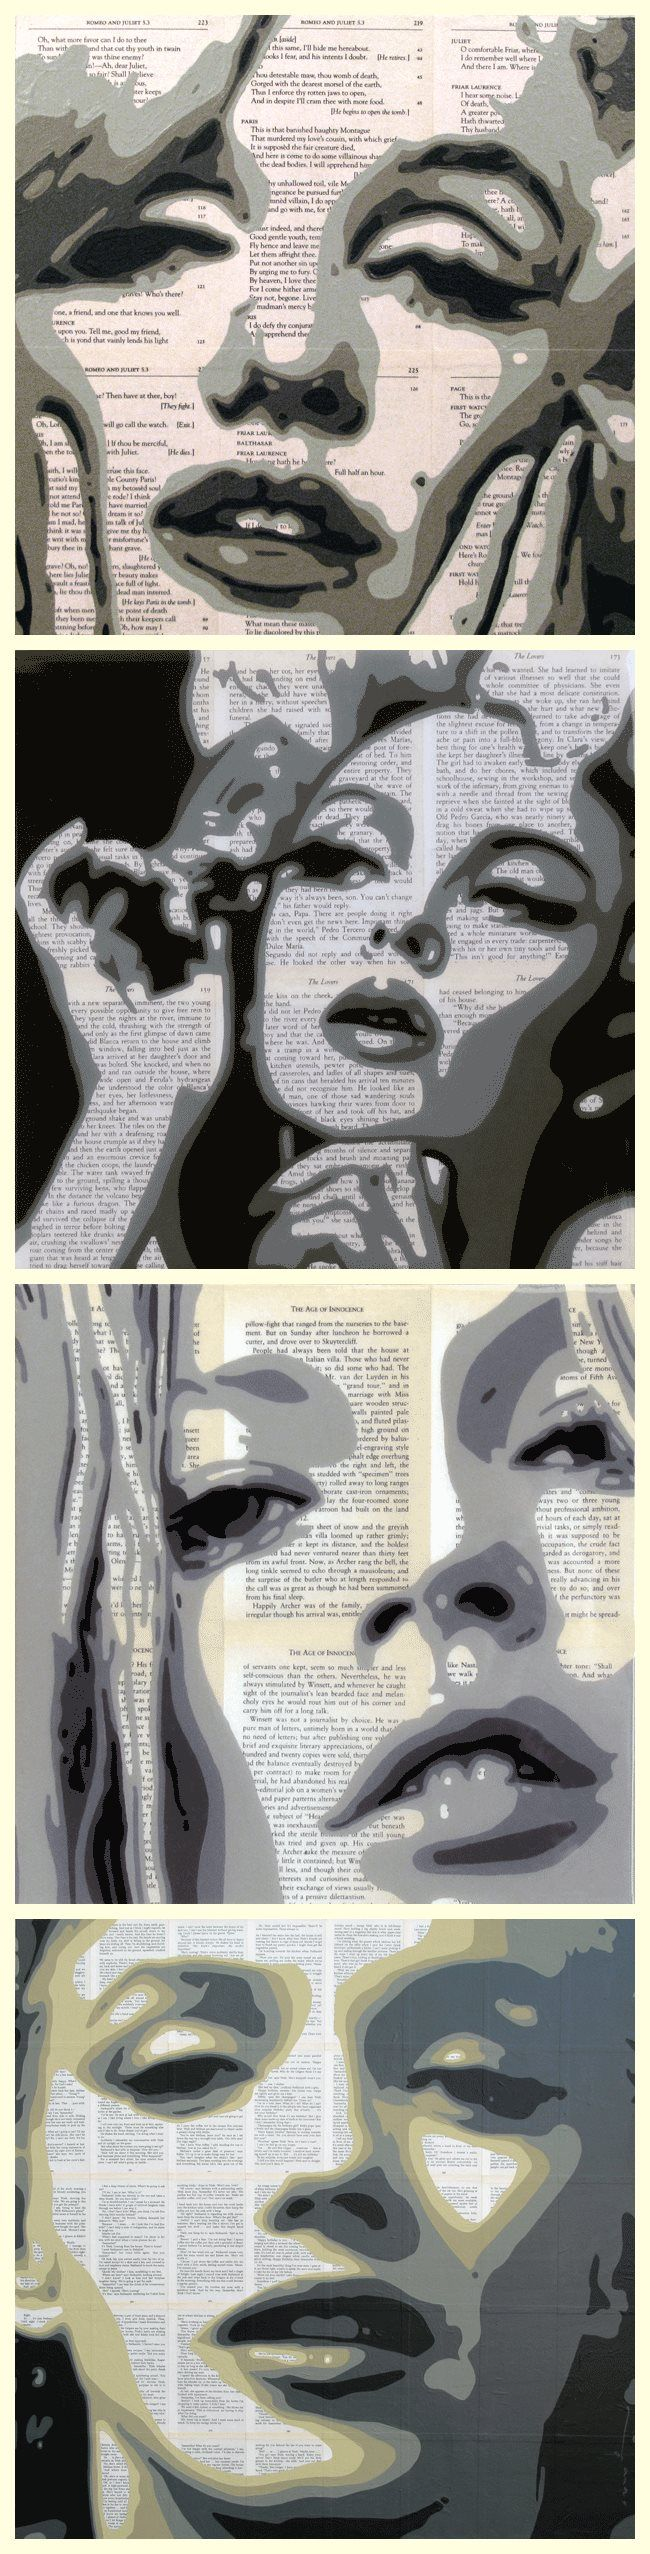 Acrylic Paintings on Book Pages by Andrzej Karwacki